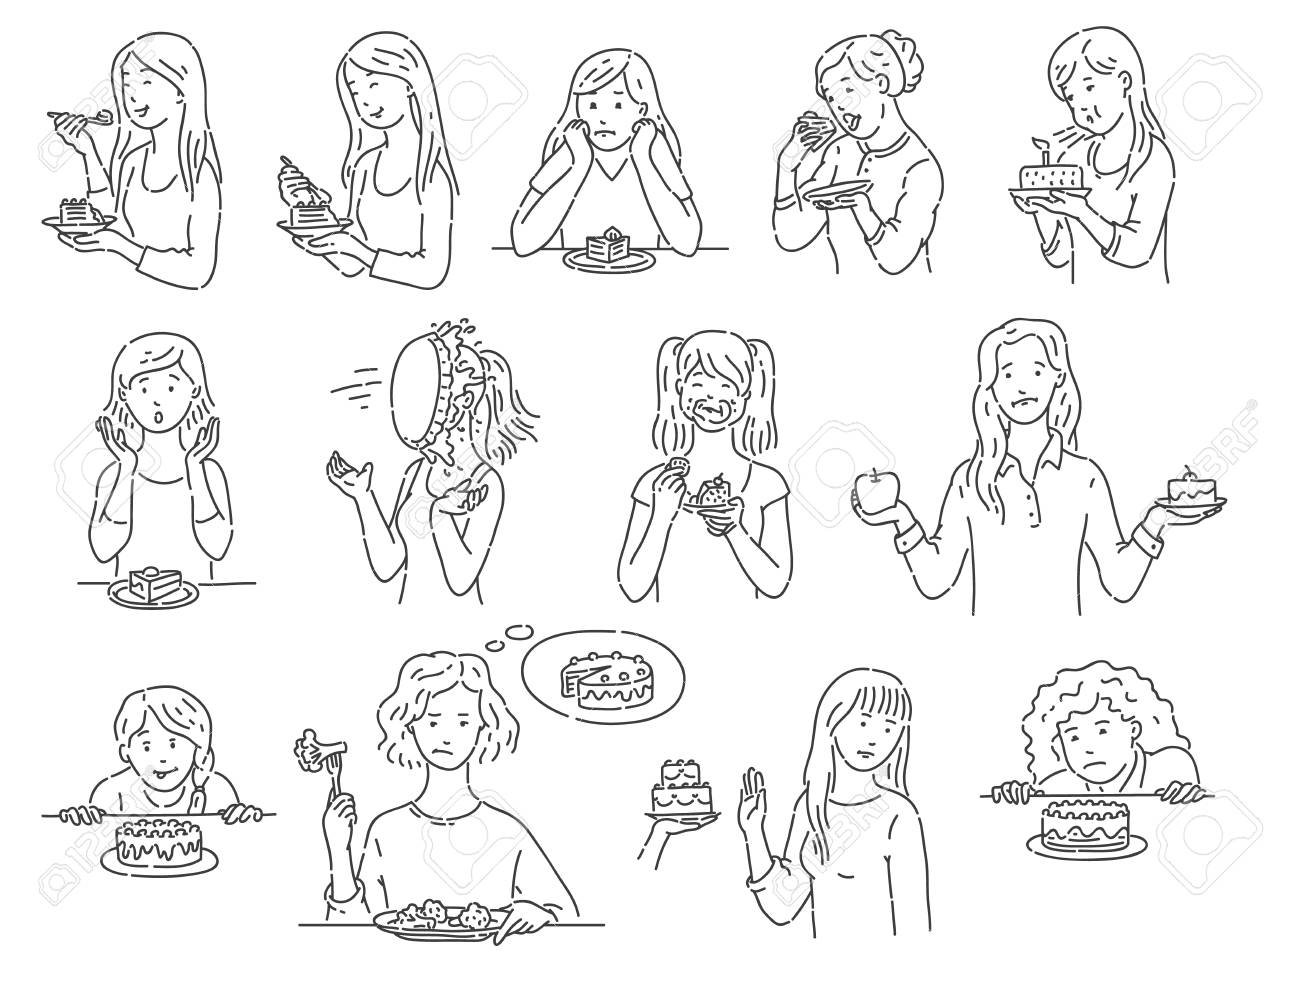 Set of female characters with dessert cake outline sketch style, vector illustration isolated on white background. Women with various emotions eating unhealthy food in different situations - 120920383